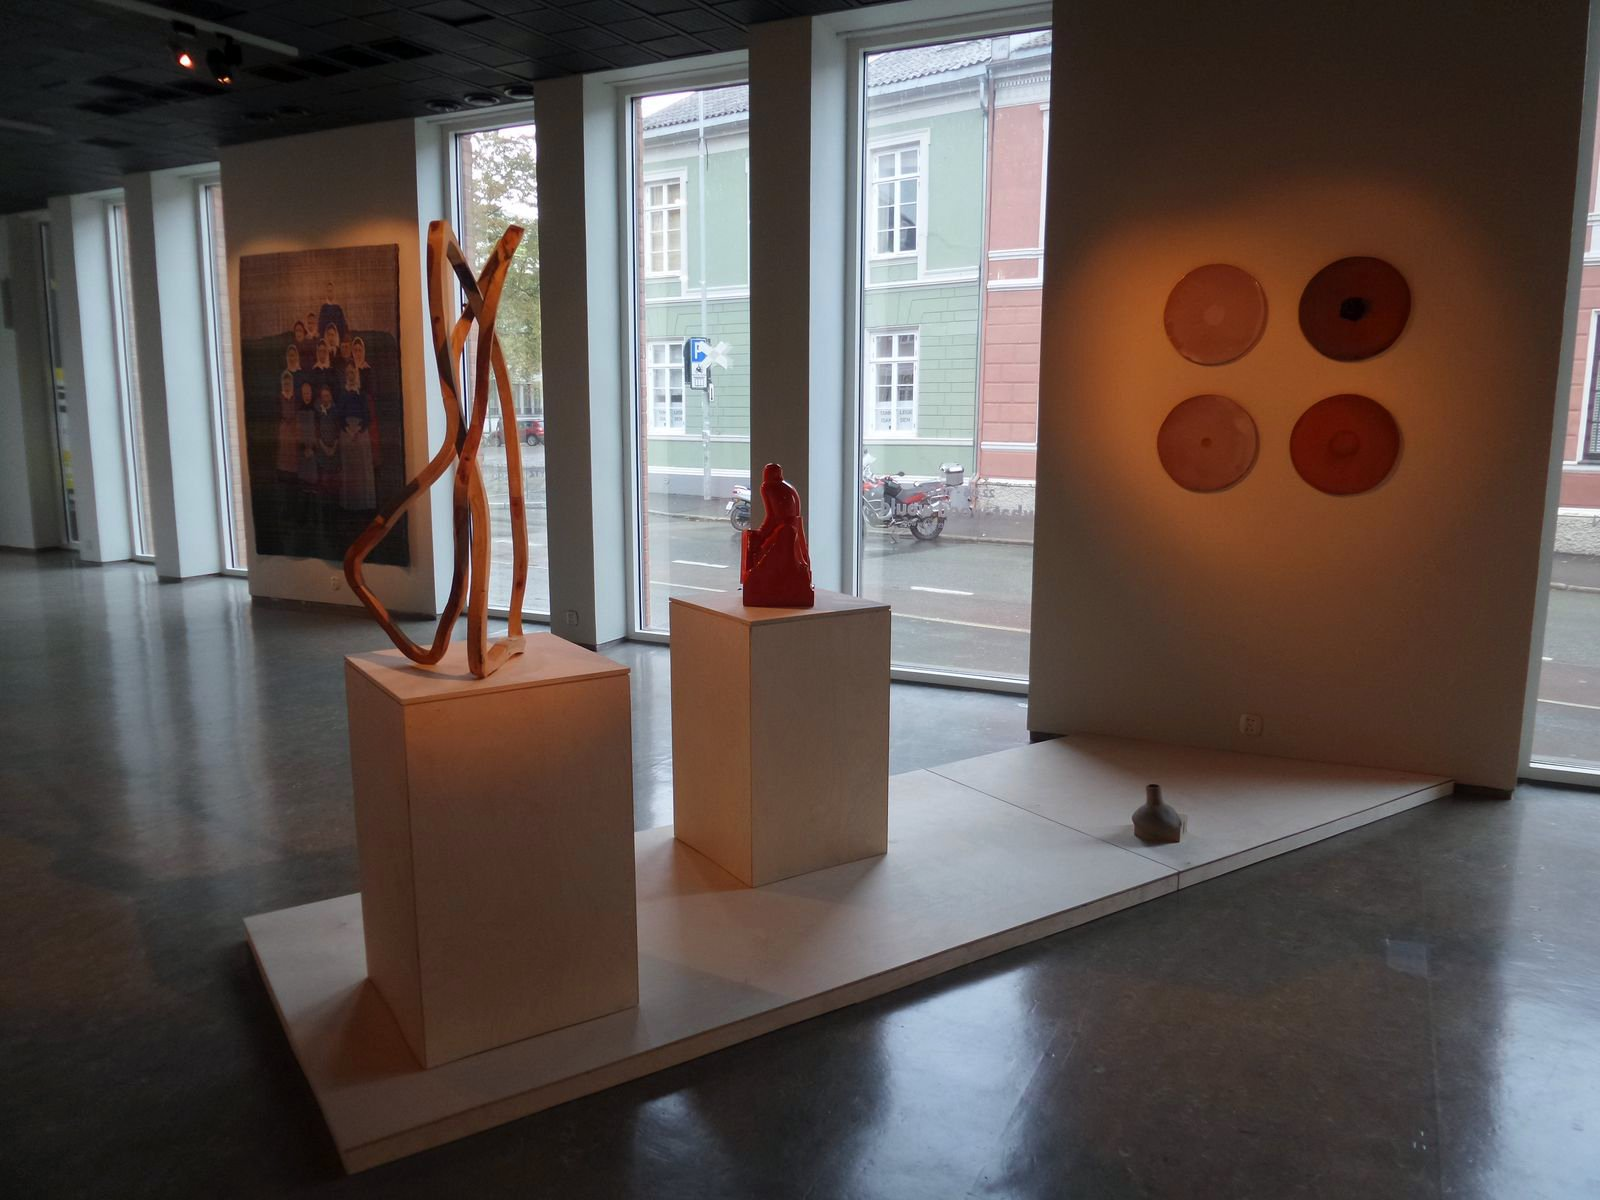 Image from the exhibition 'Kunsthåndverk 2017''